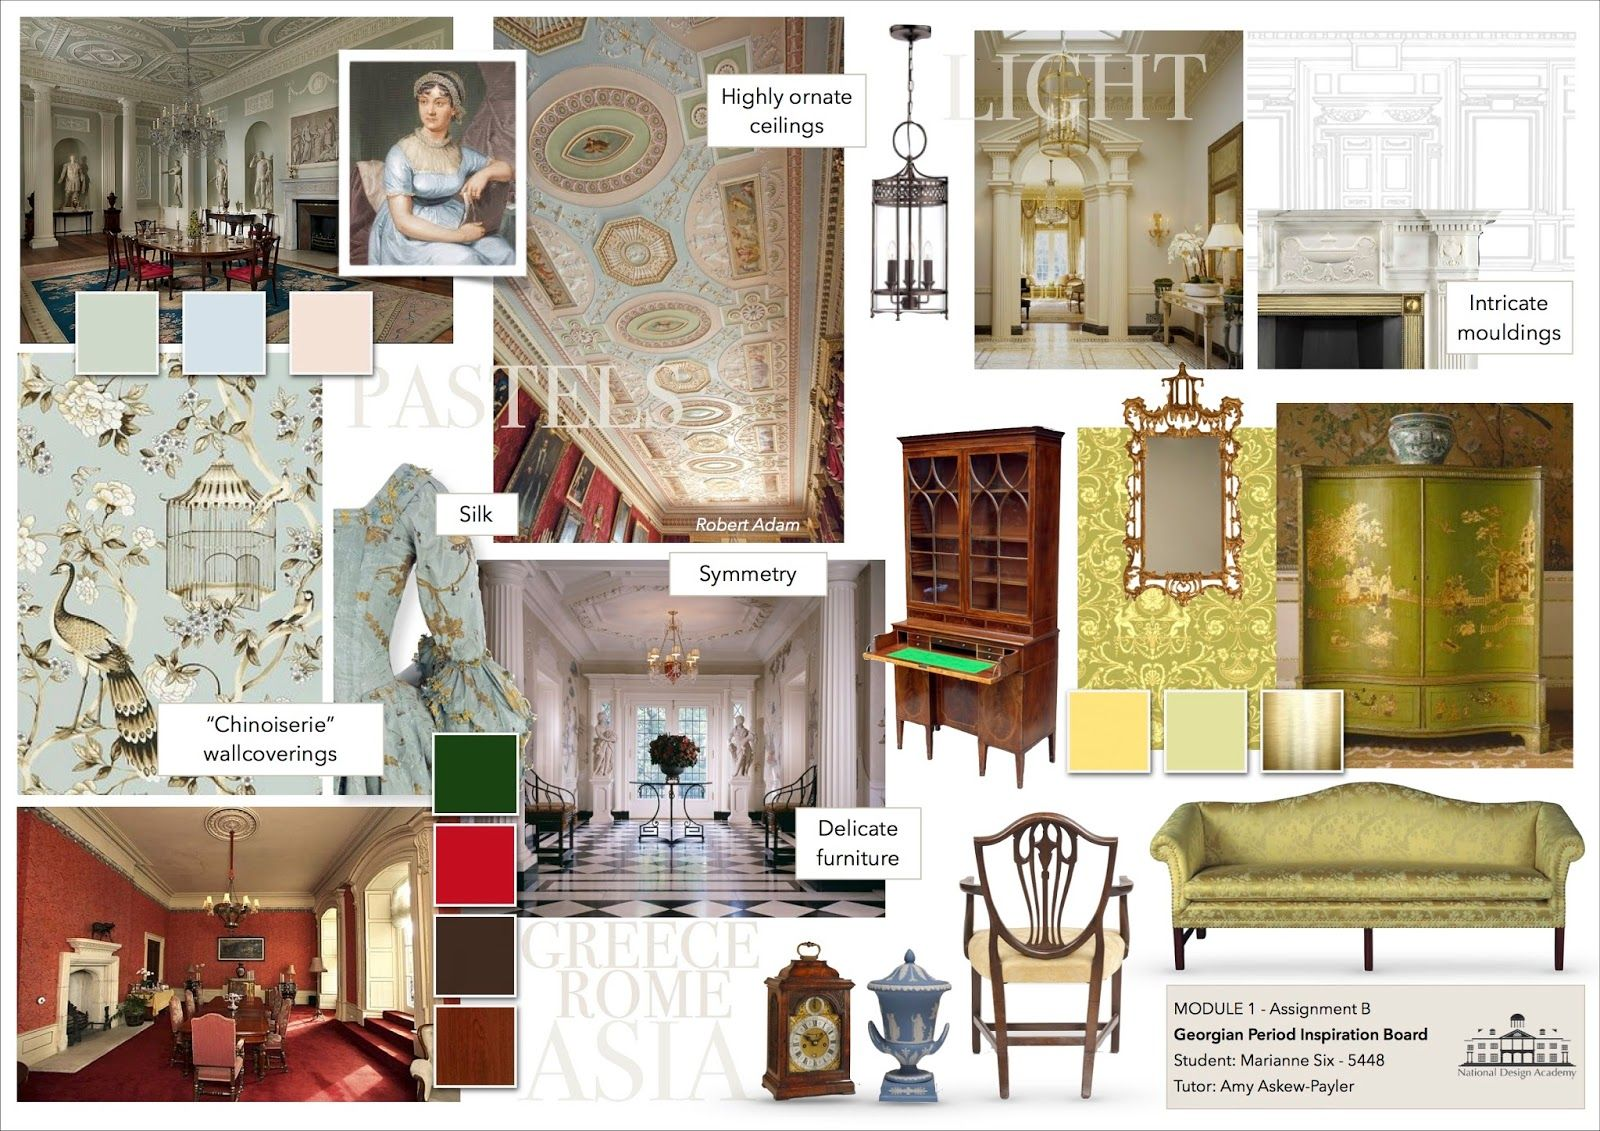 The Stylish Interior  Interior design presentation boards